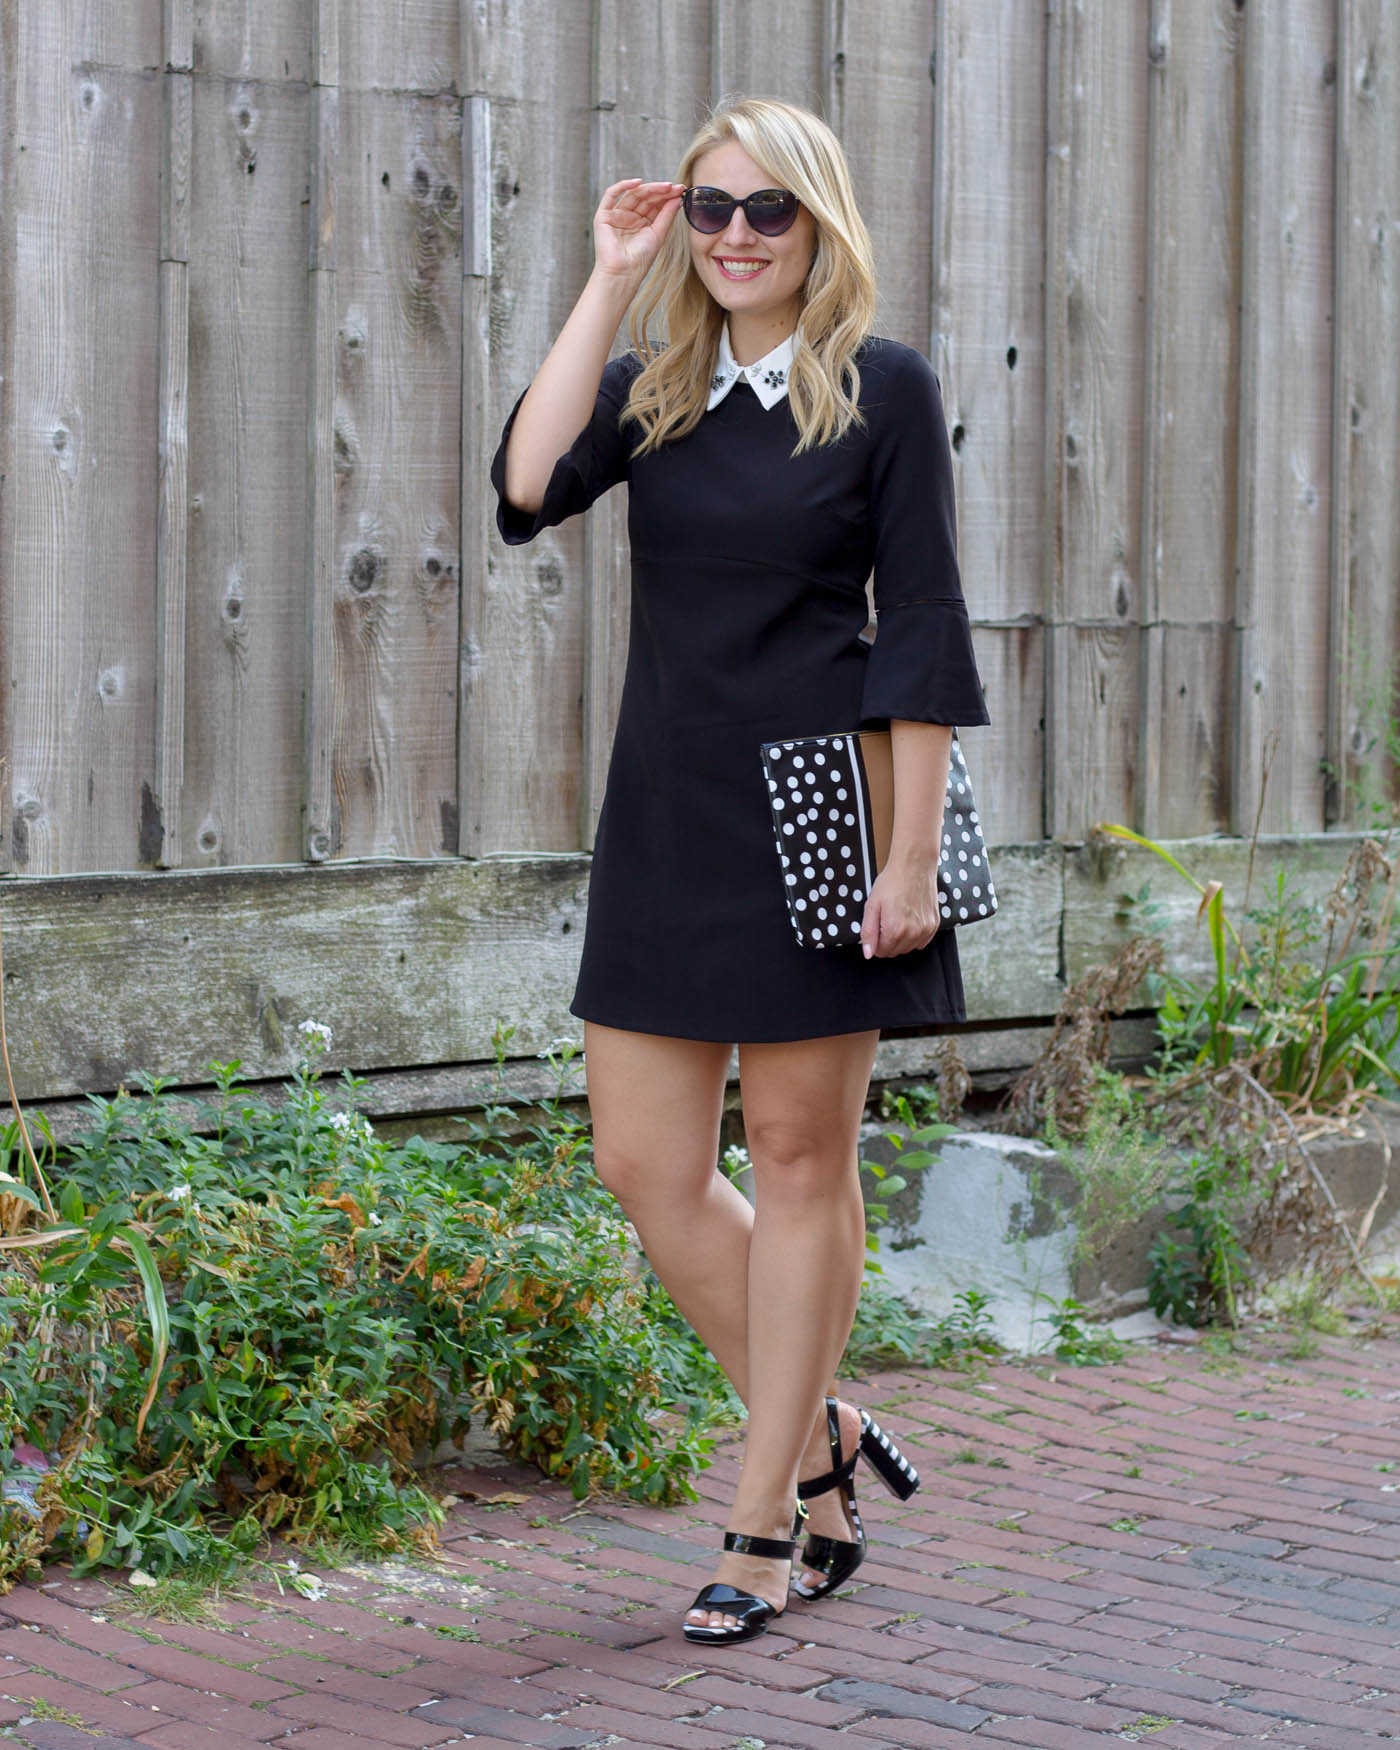 Zara black dress with white embellished collar for under $50